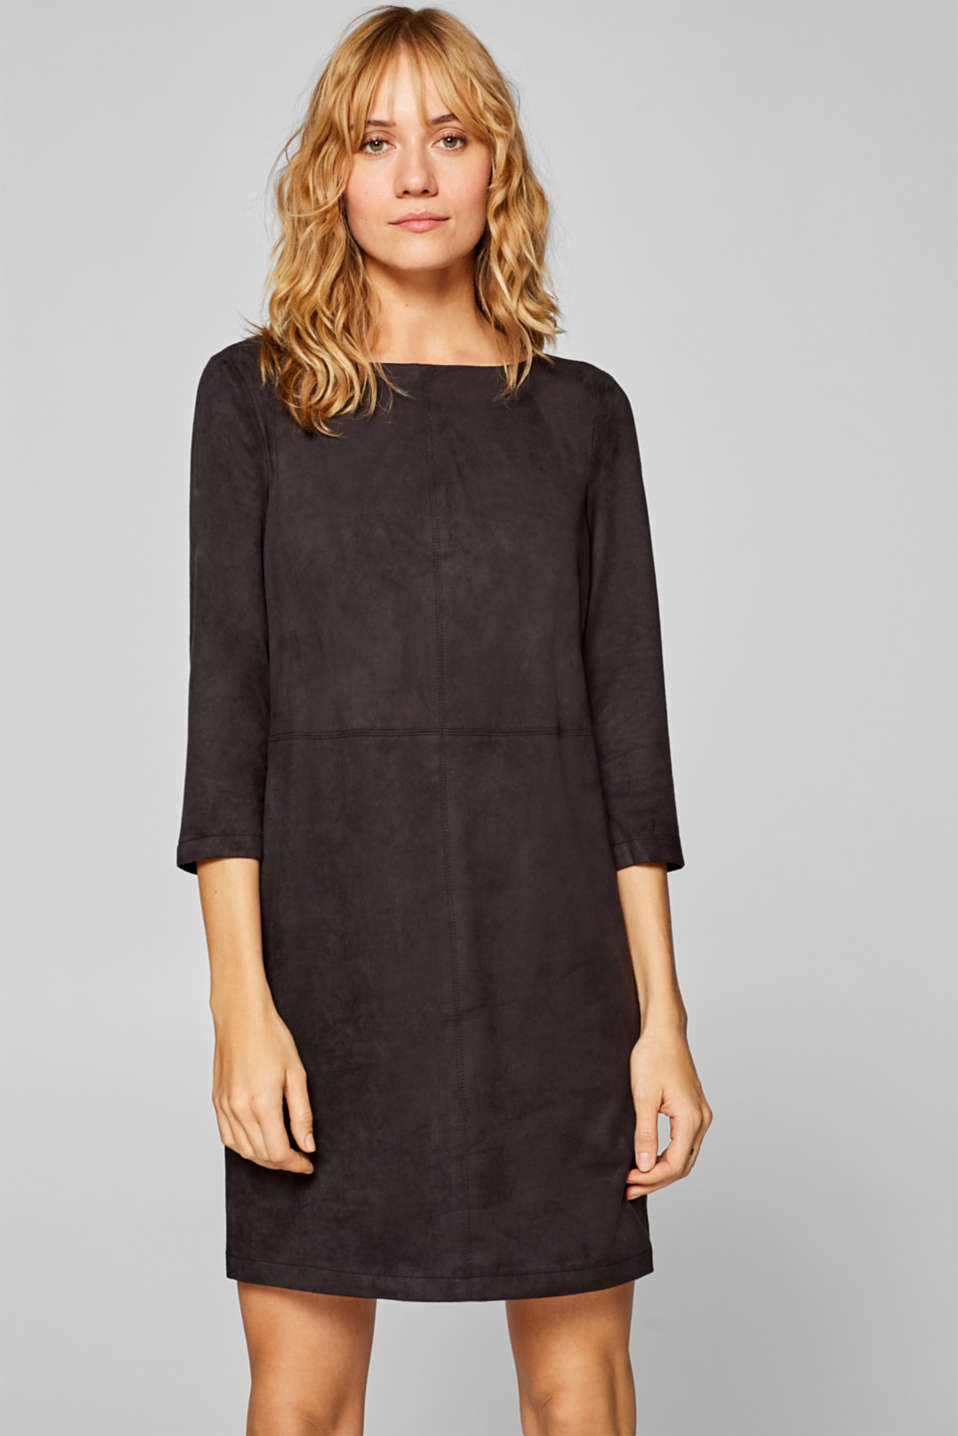 Esprit - Faux suede dress